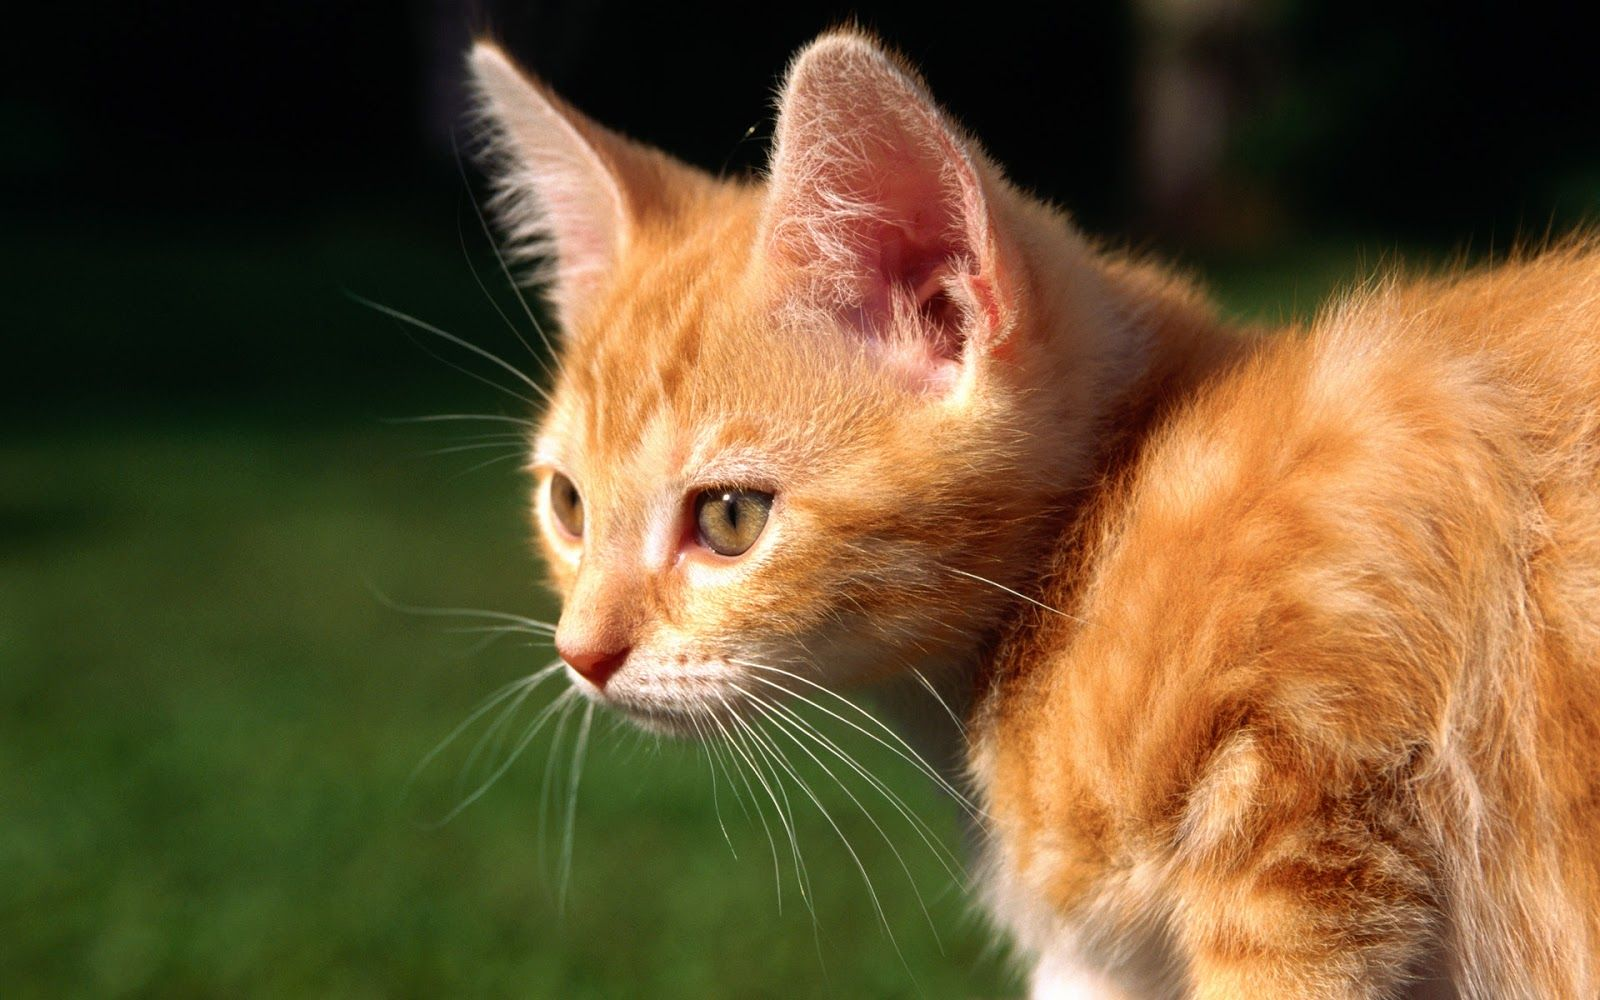 Free Hd Wallpapers Cat Wallpaper Baby Cats The Picture Kitty Kitten Cute Wicked Squirrel